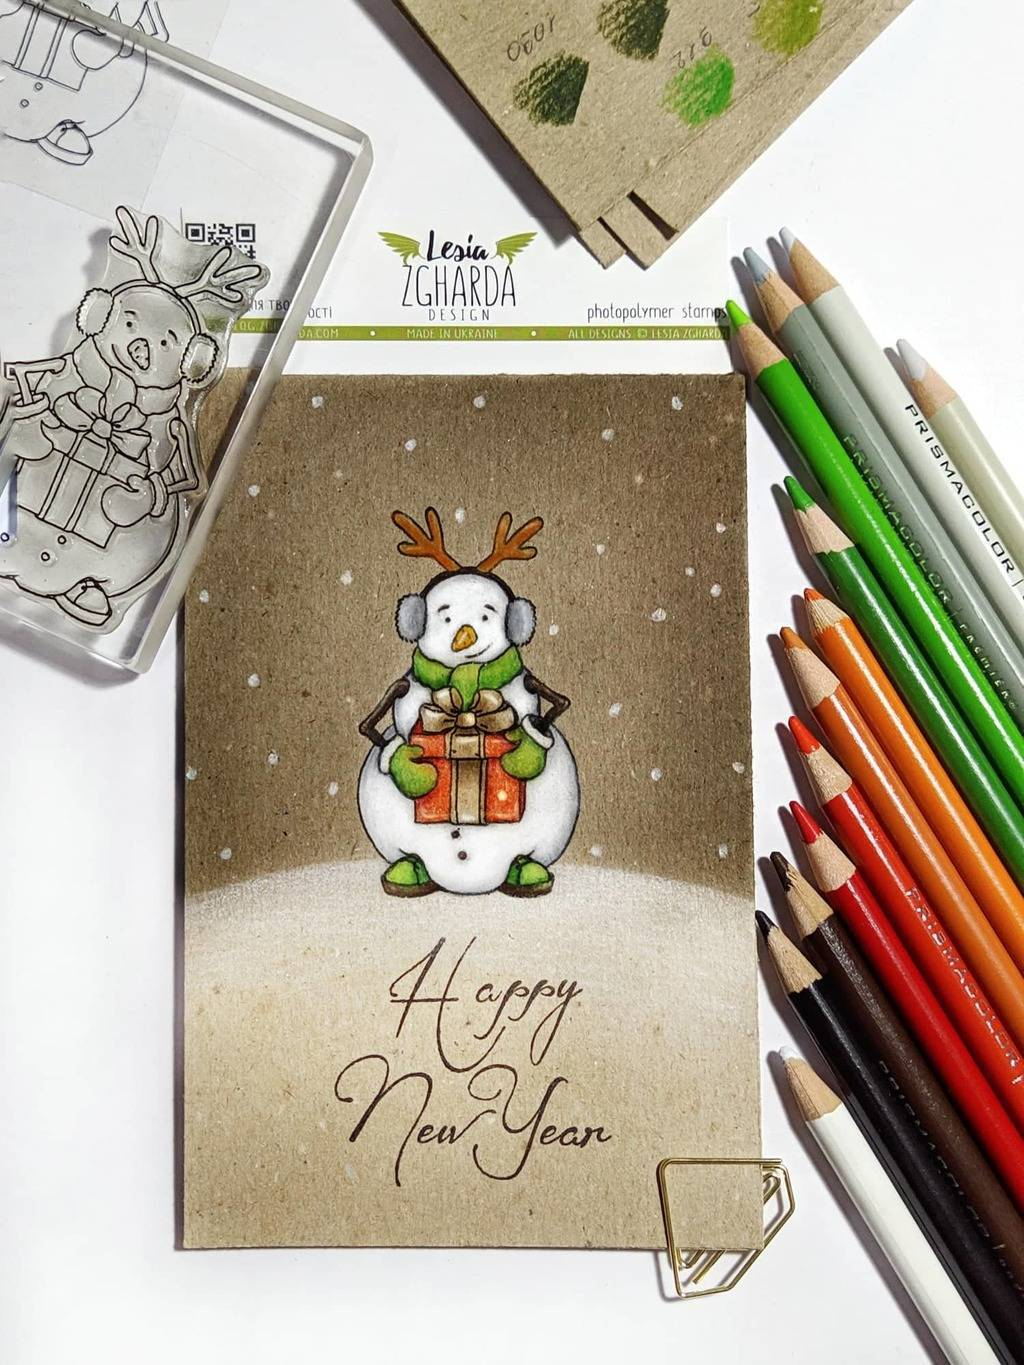 Happy New Year with a snowman card! | Lesia Zgharda clear stamps. Funny snowman with a gift stamp will give a festive mood and joy to your holiday cards.